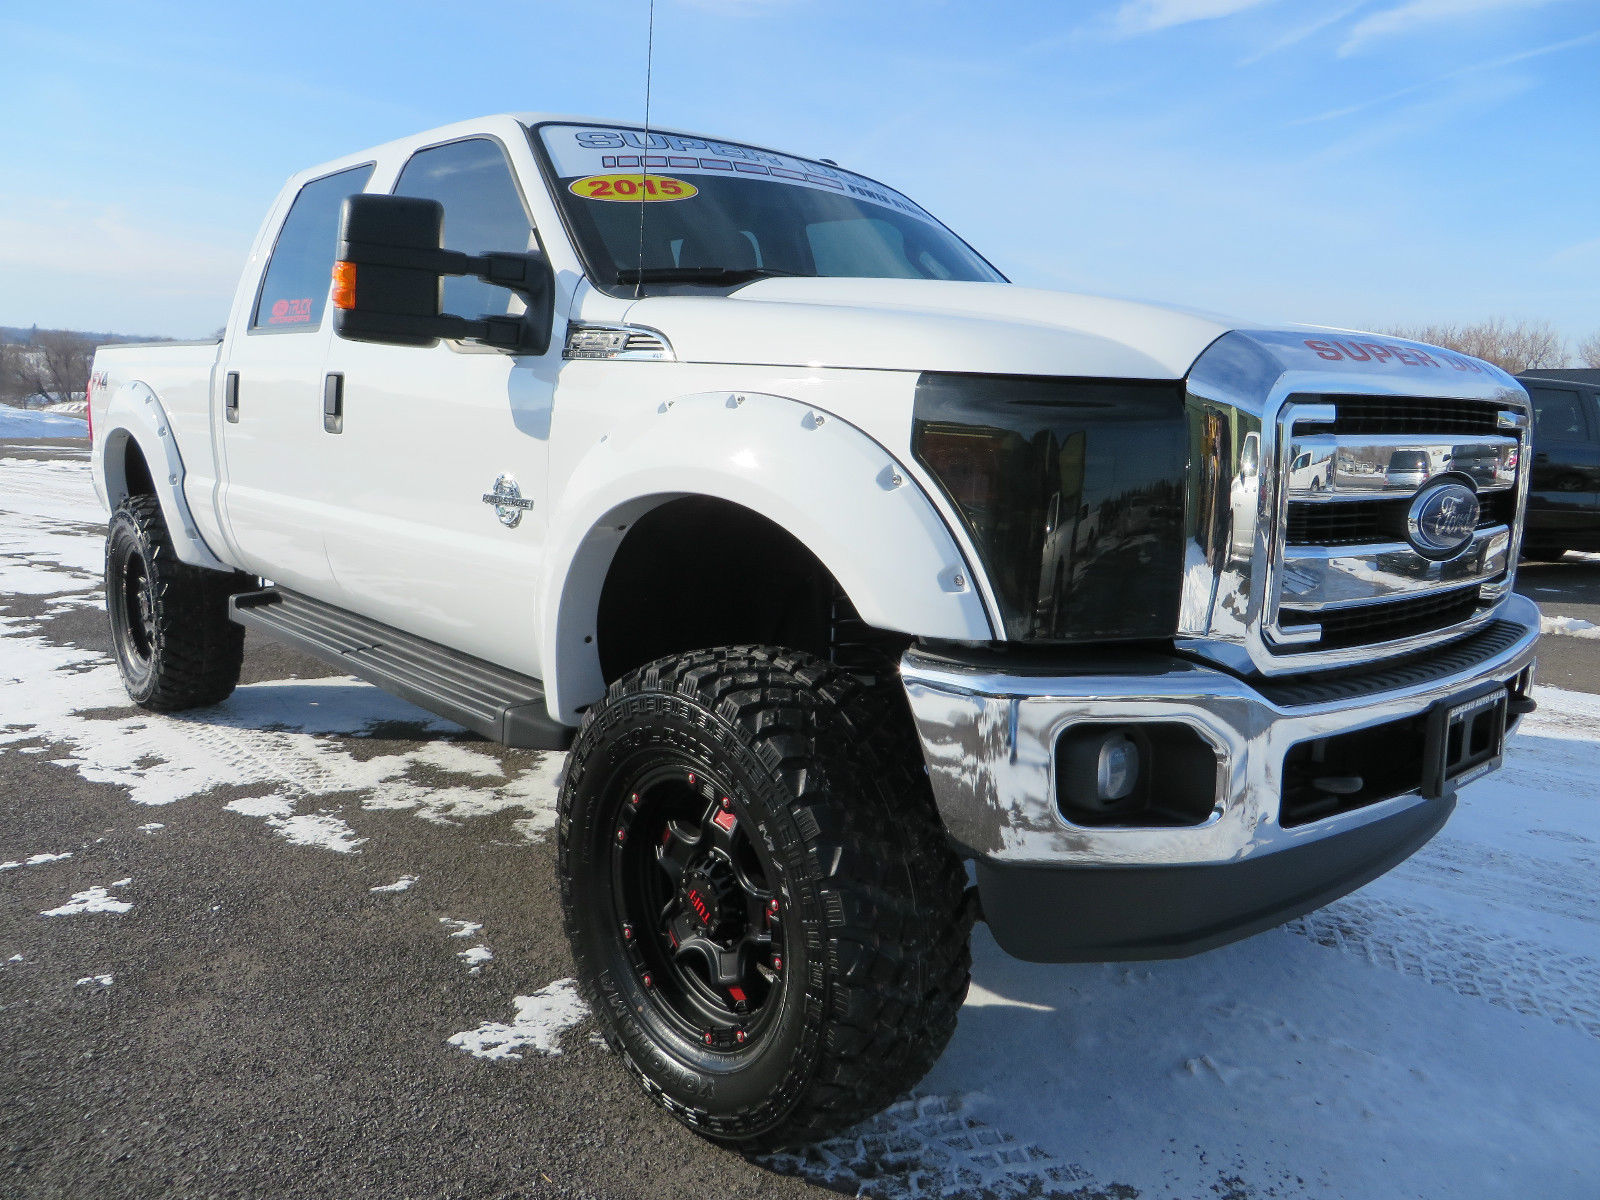 2015 Ford F250 Super Duty, XLT, 4×4, 6.7L Diesel, Supercrew, Lifted